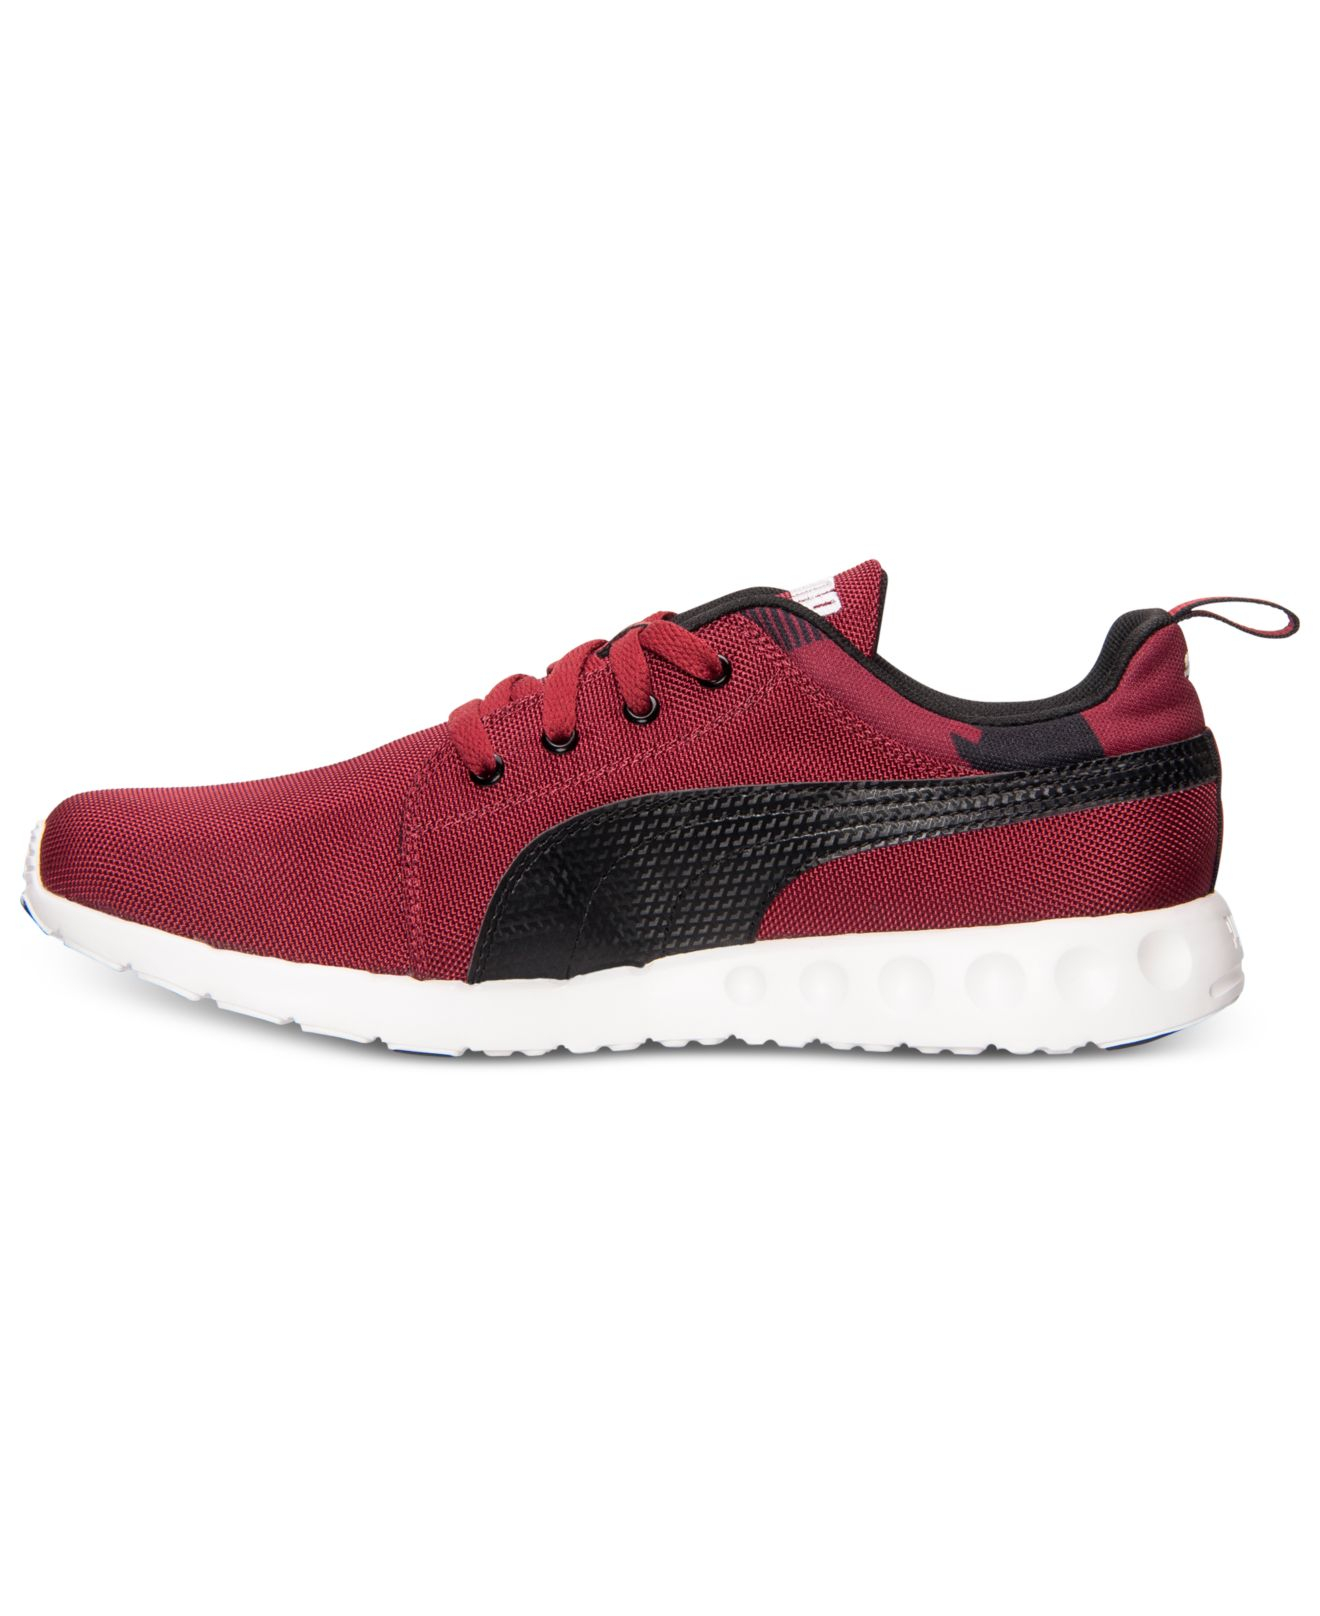 lyst puma men 39 s carson runner casual sneakers from. Black Bedroom Furniture Sets. Home Design Ideas